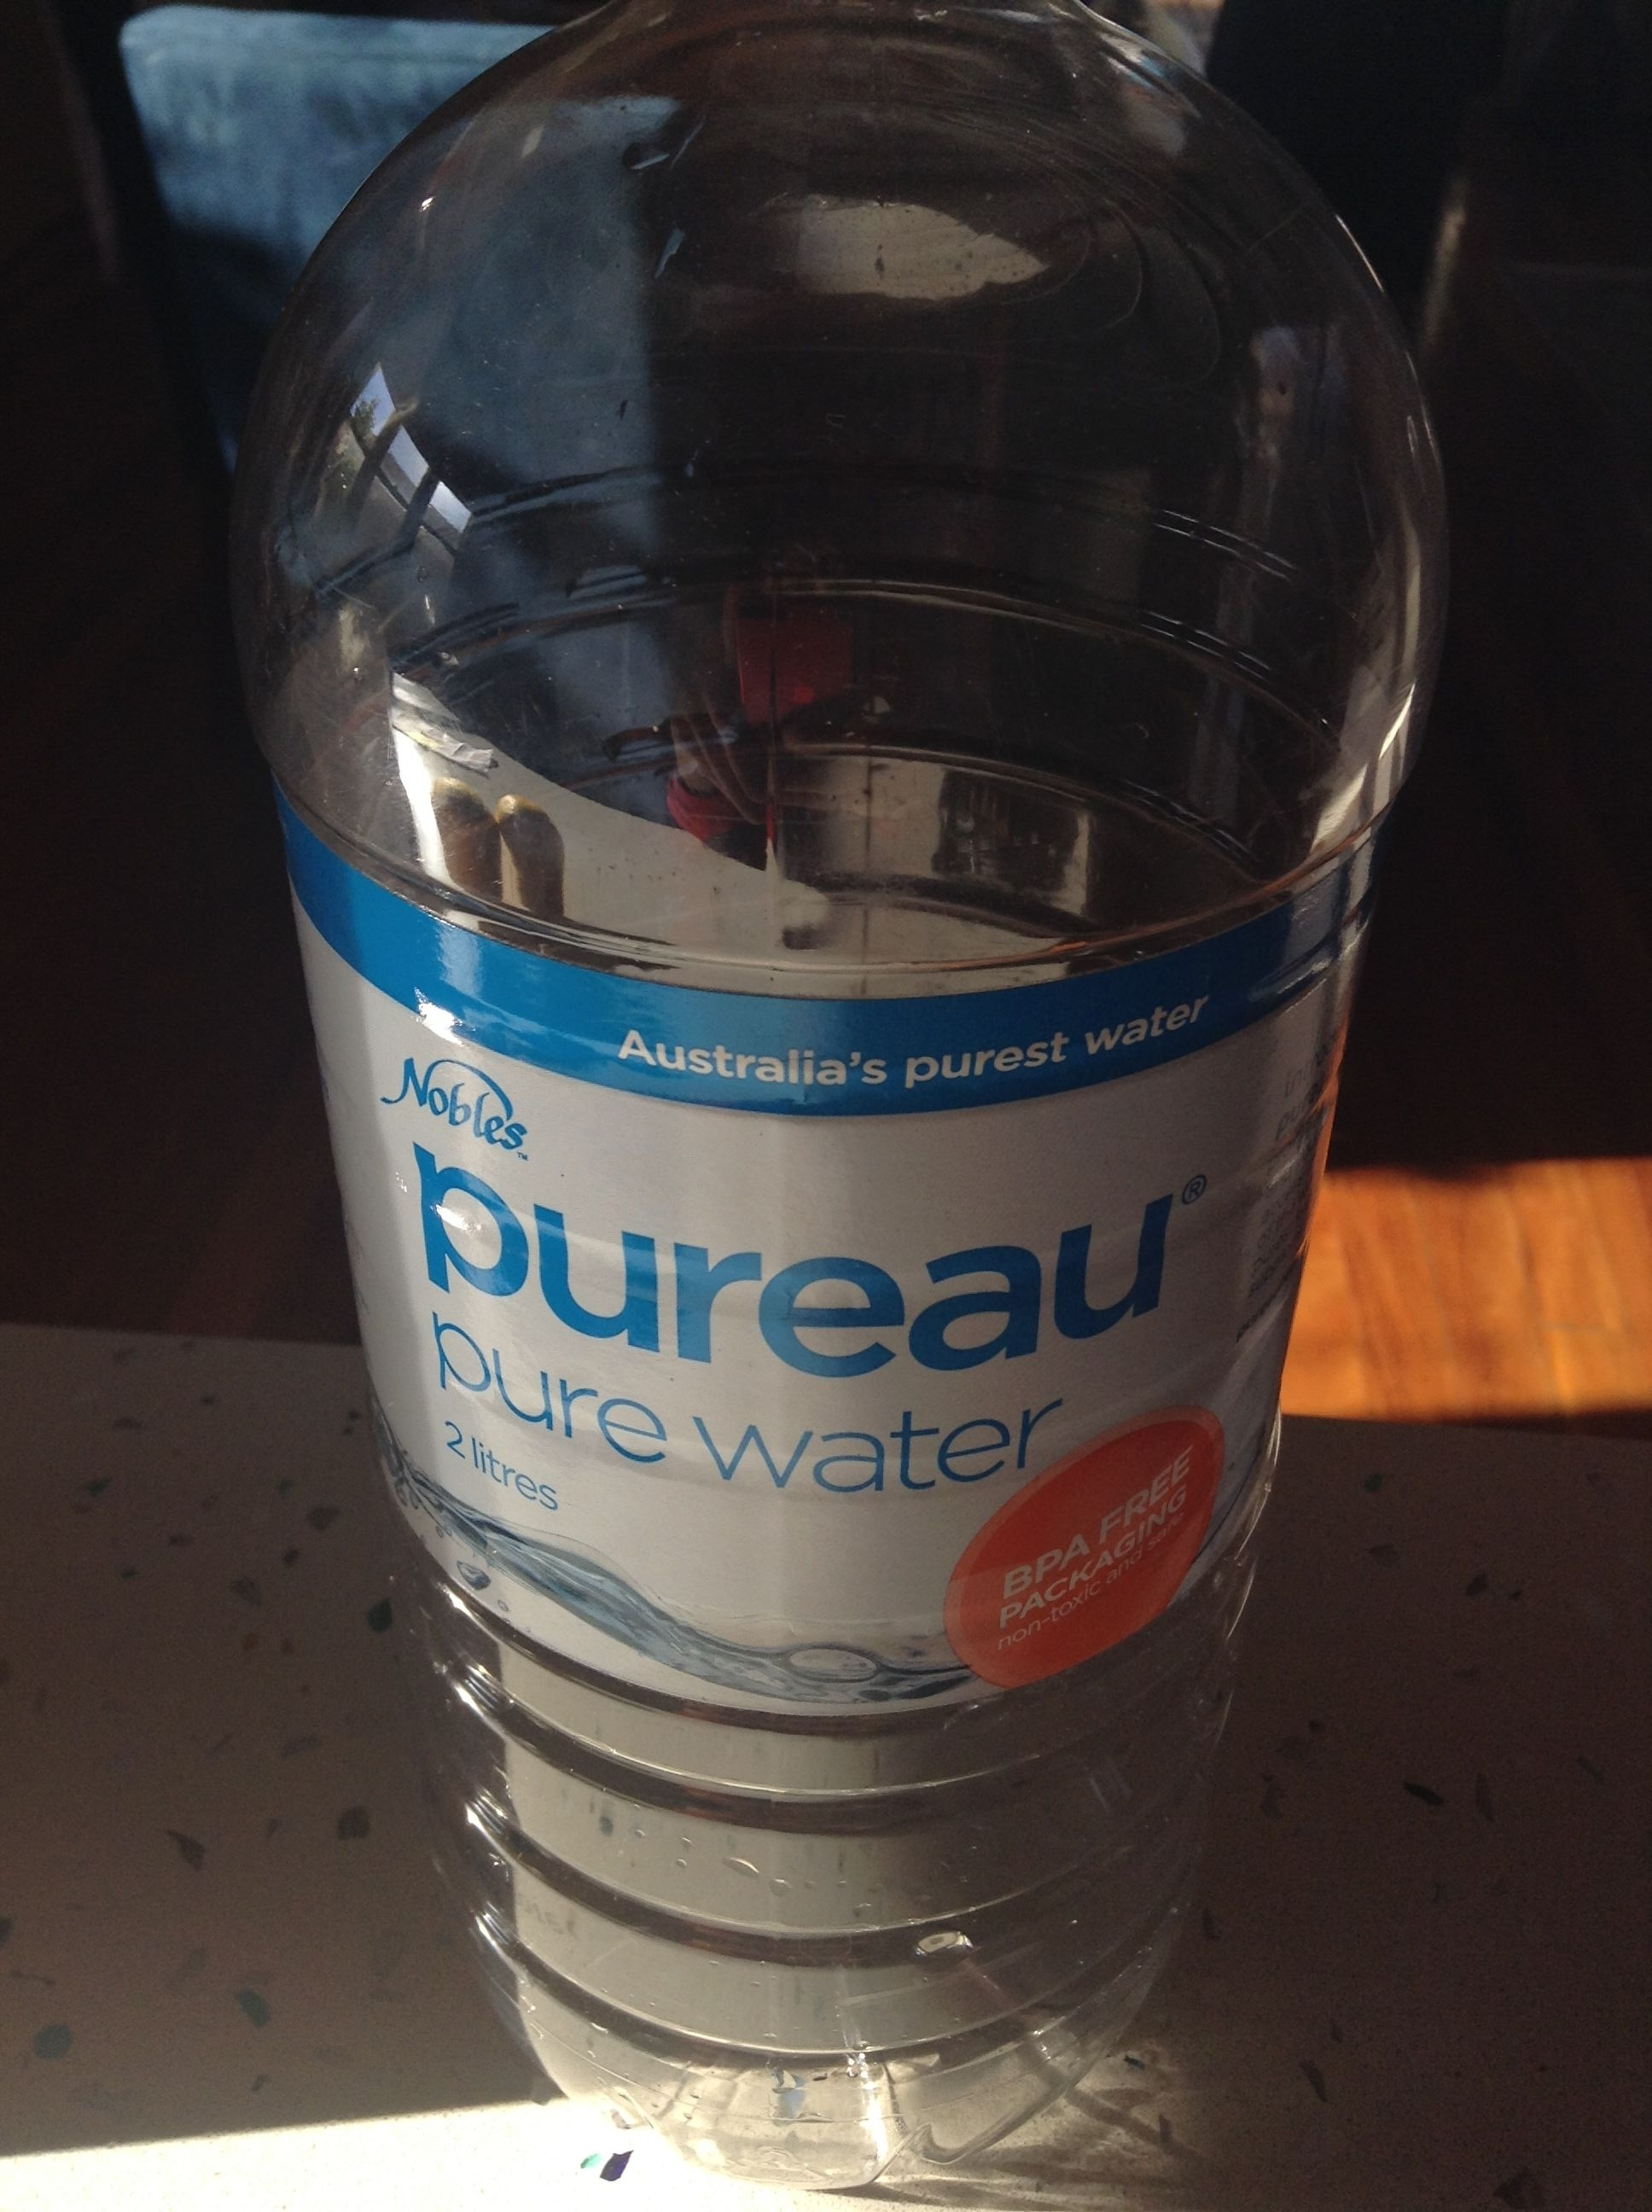 Pureau - Pure Water BPA Free Packaging non toxic and safe - Product